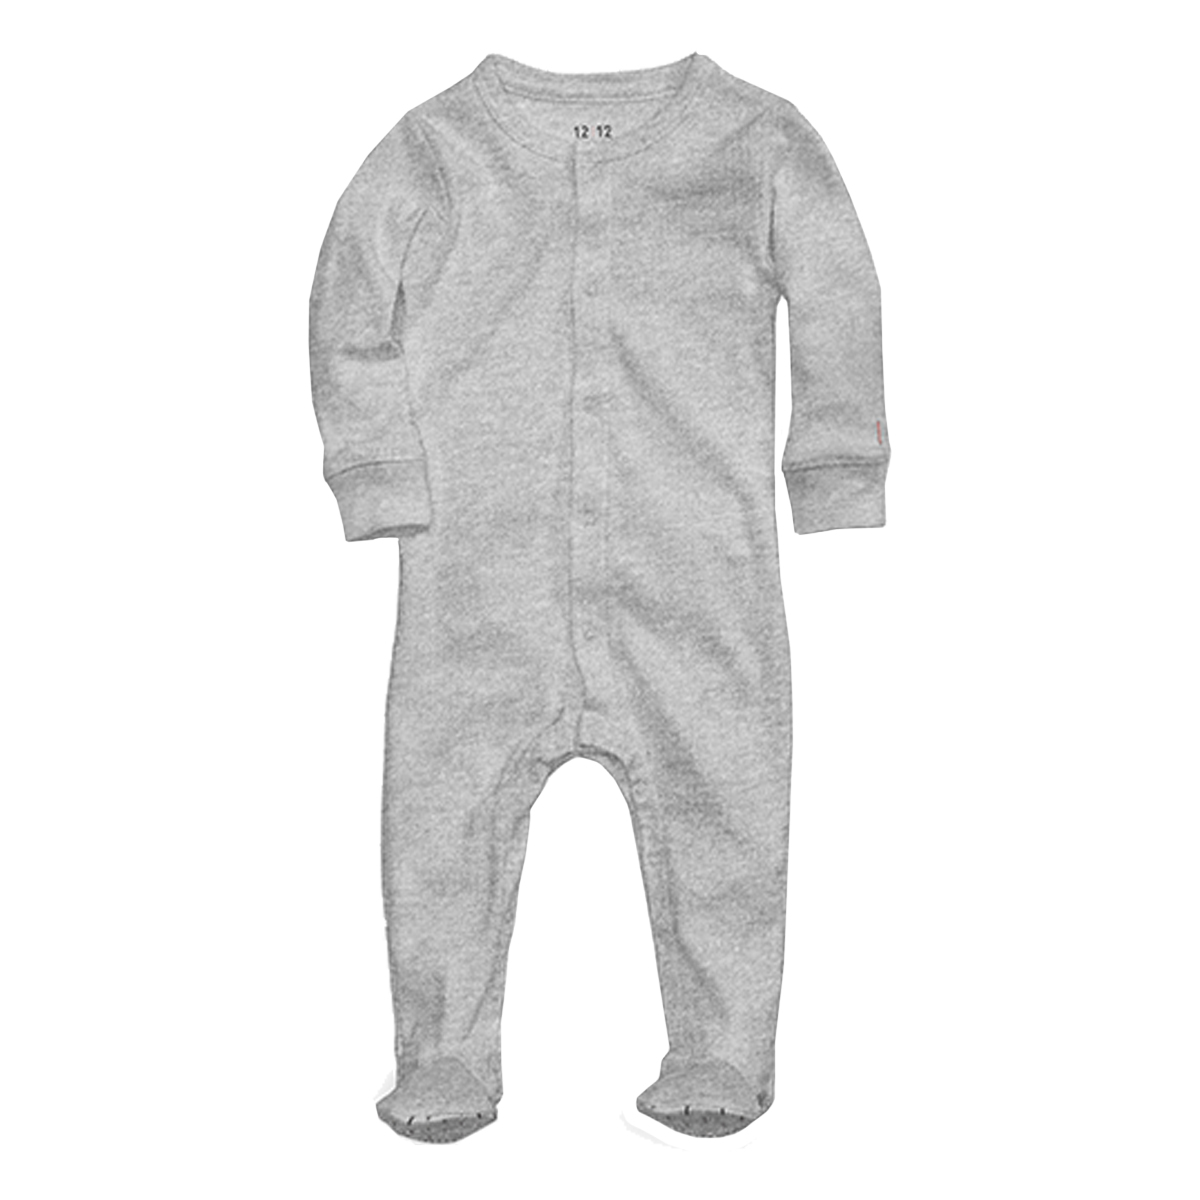 1212 Organic Footed Bodysuit